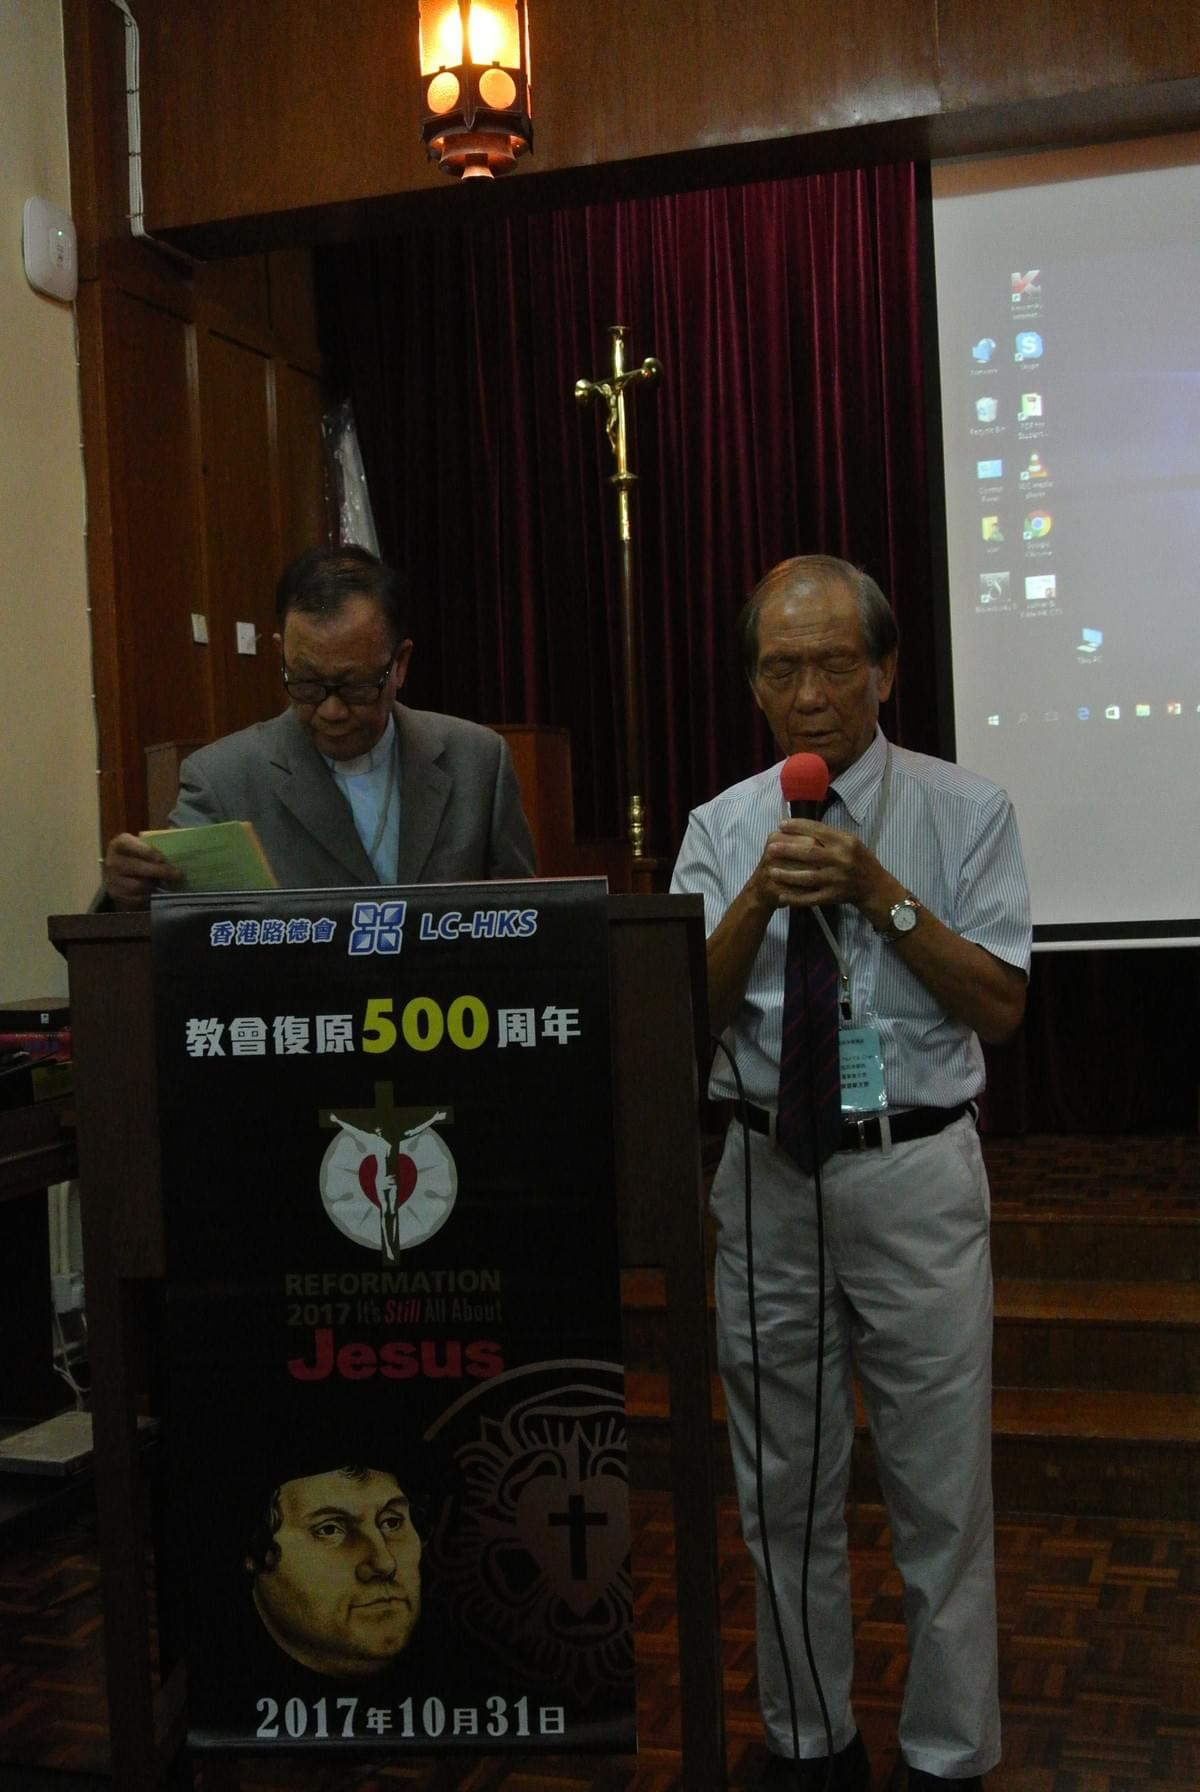 Rev. Paul Y. S. CHAN, Chairman of the Seminary Board of Control, Saying a Benediction